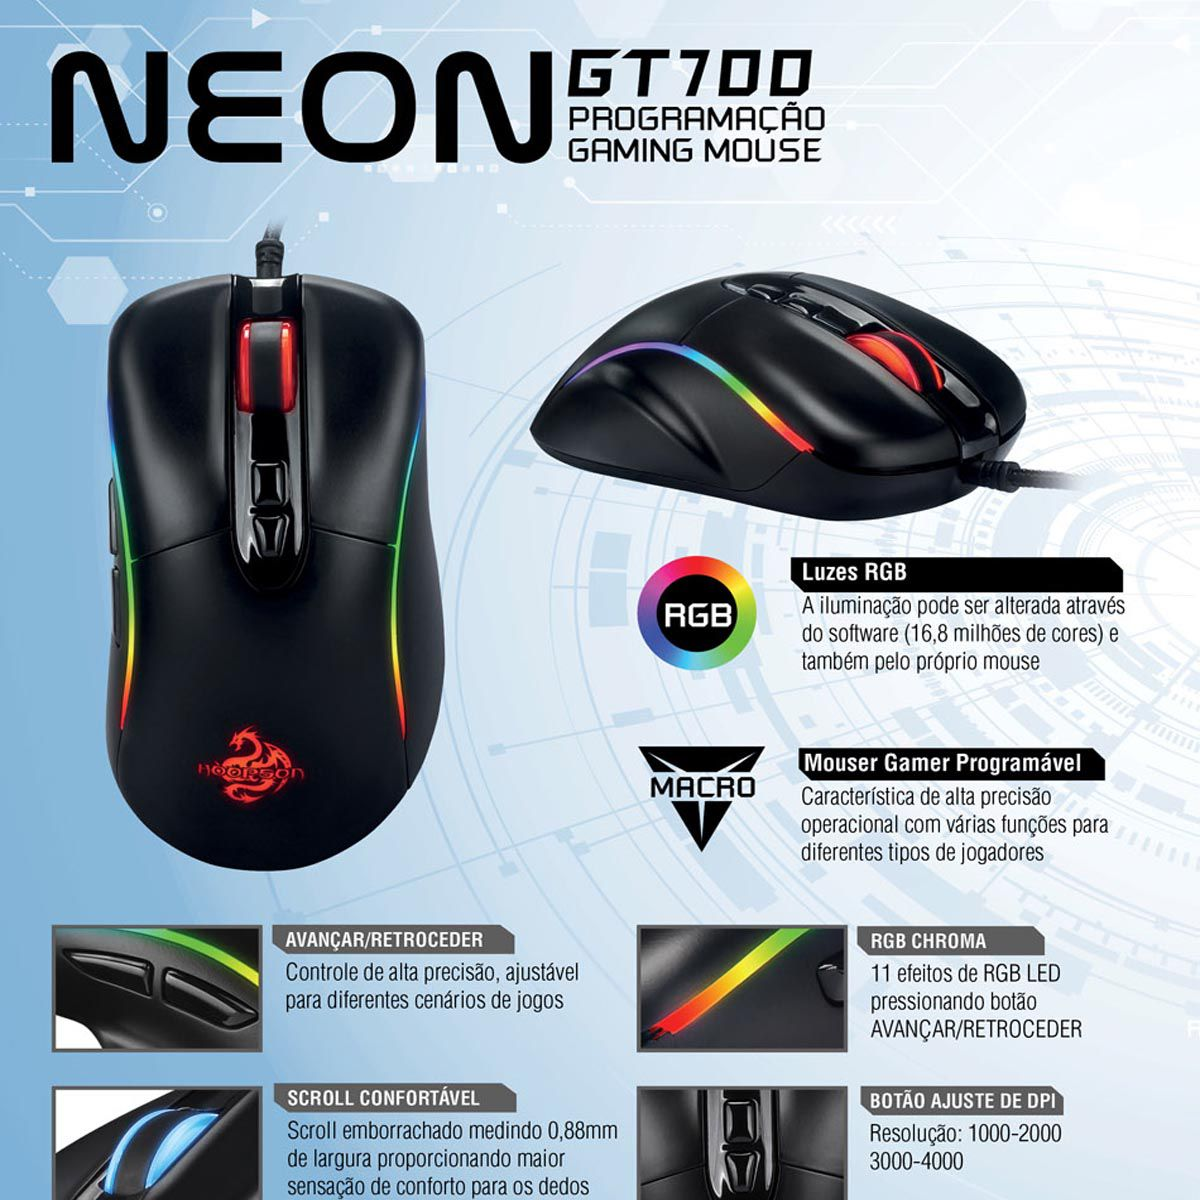 Mouse Gamer Programável Neon Gt700 Hoopson